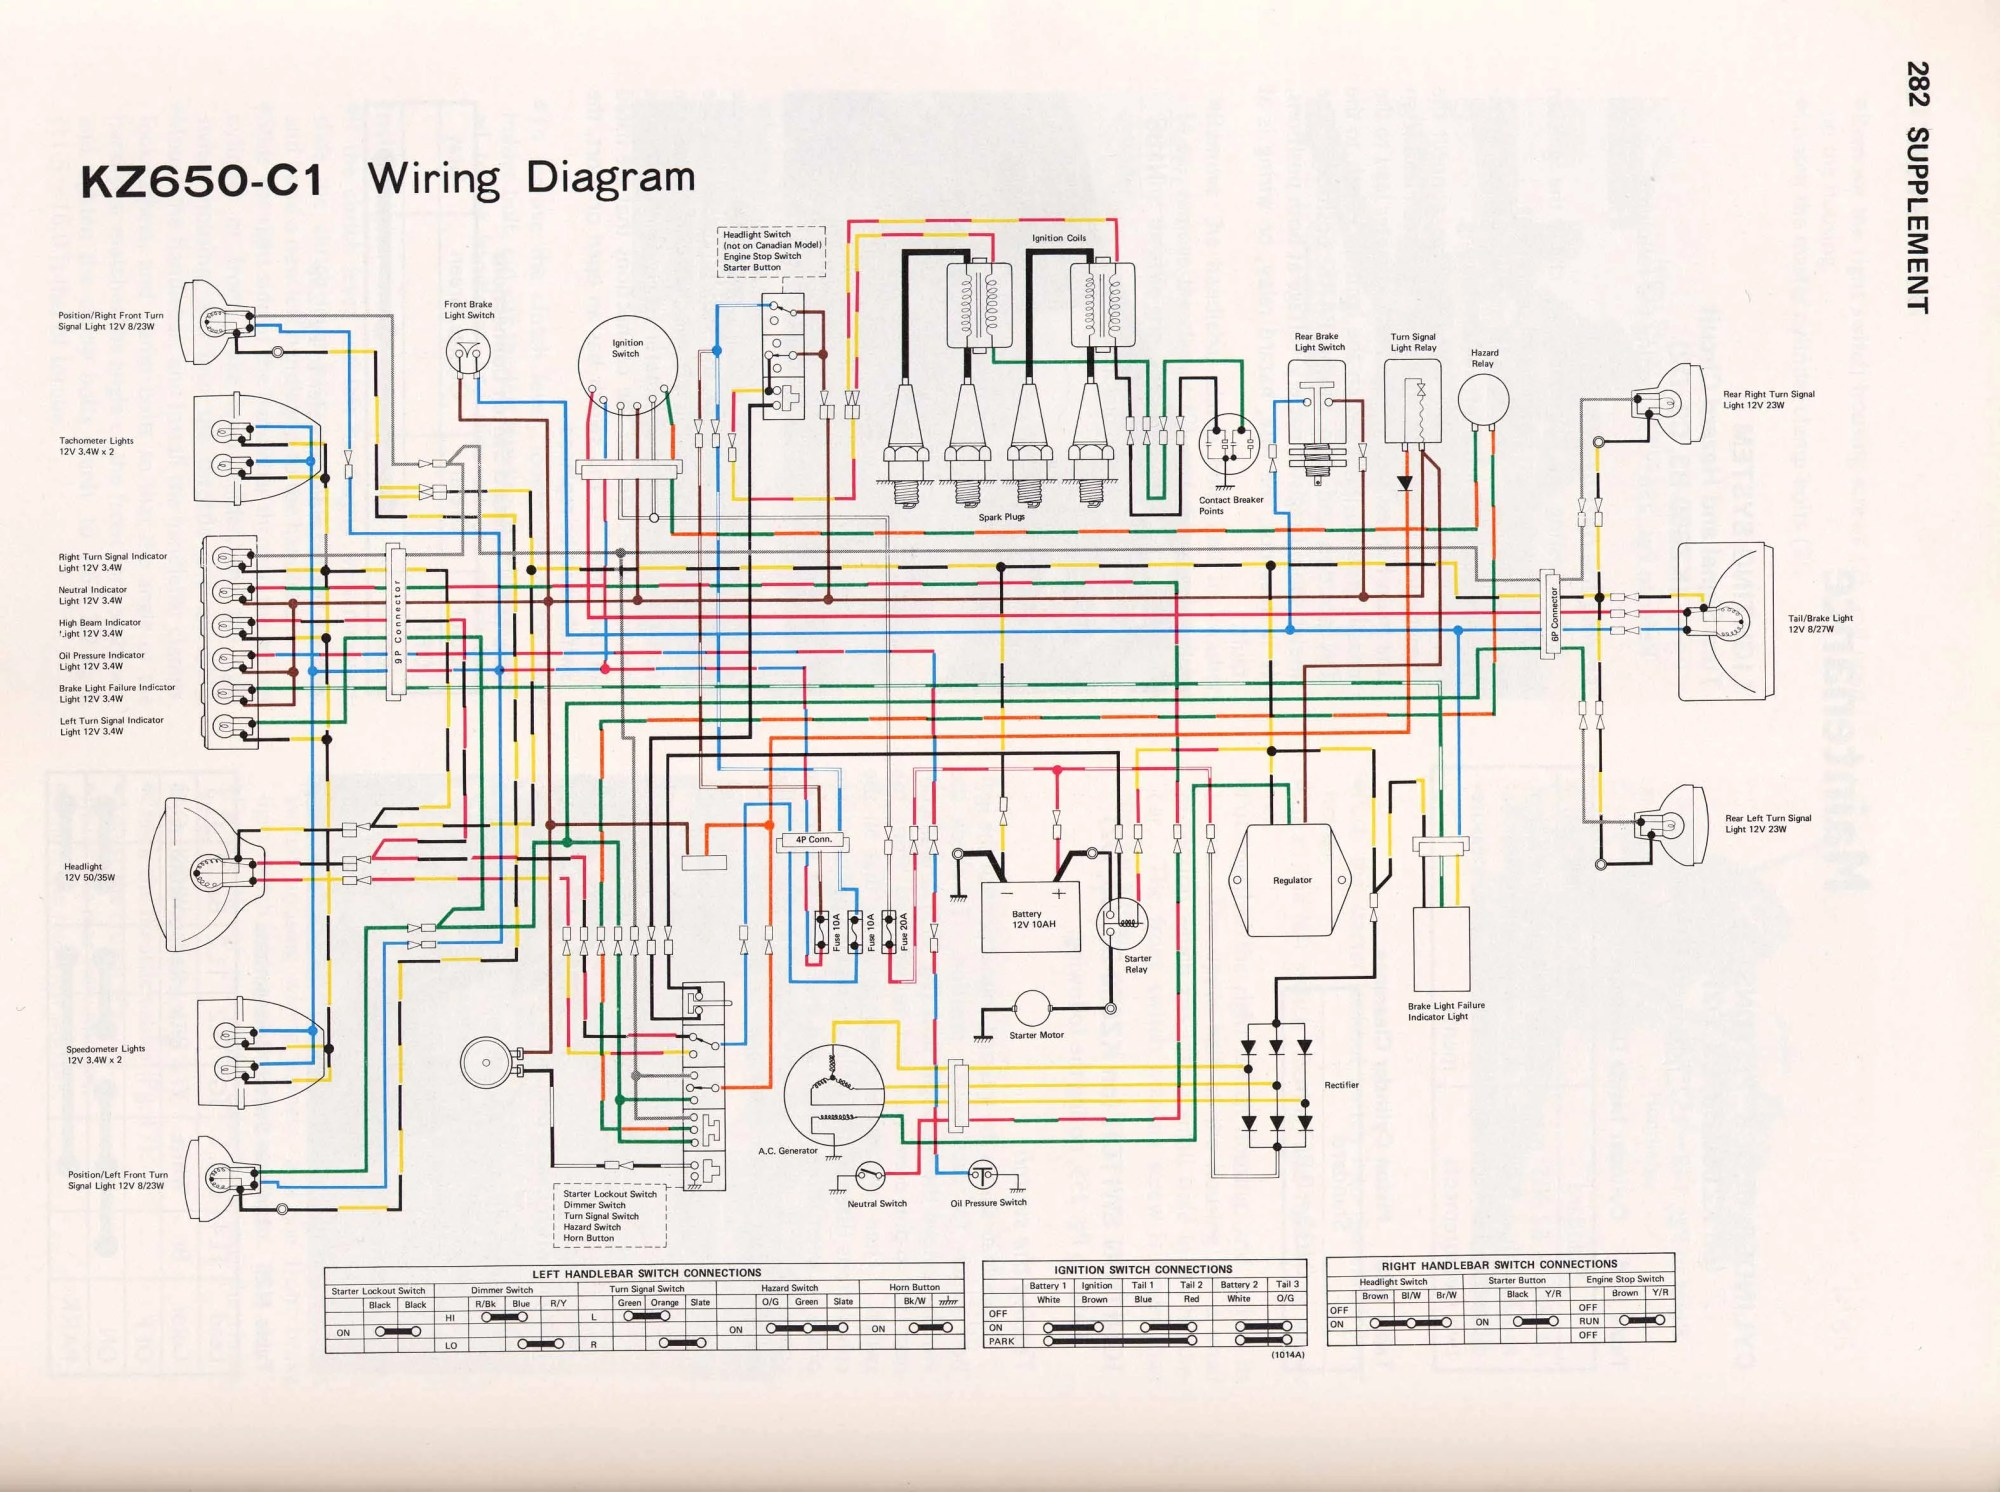 hight resolution of 1978 kawasaki kz650 wiring diagram wiring diagram new kawasaki lcd wiring diagram